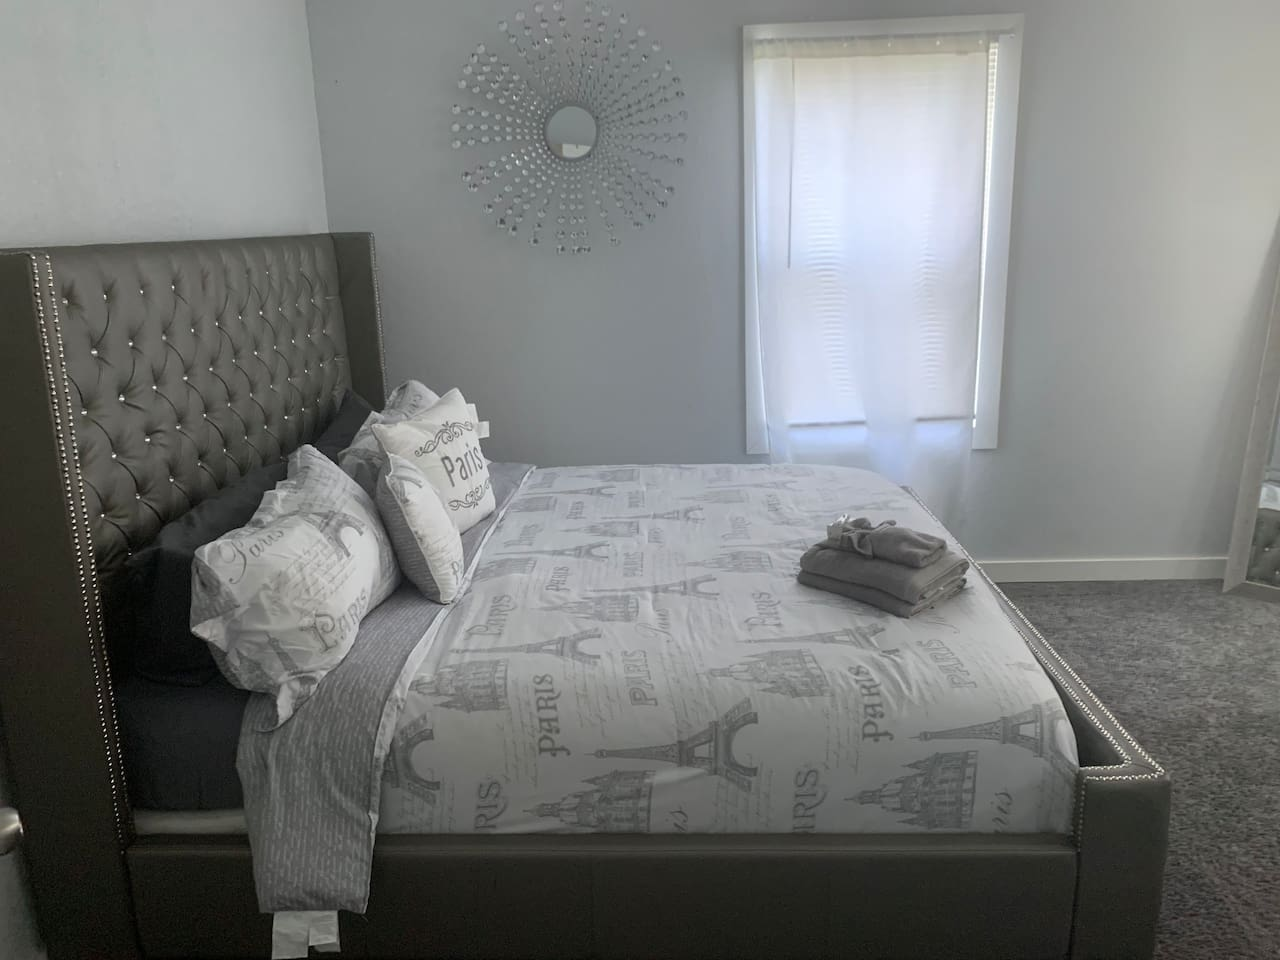 """ROOM #1 - KING BED - 65"""" FLATSCREEN SMART TV - 2 ADDITIONAL CHAIRS FOR EXTRA SEATING IN ROOM"""